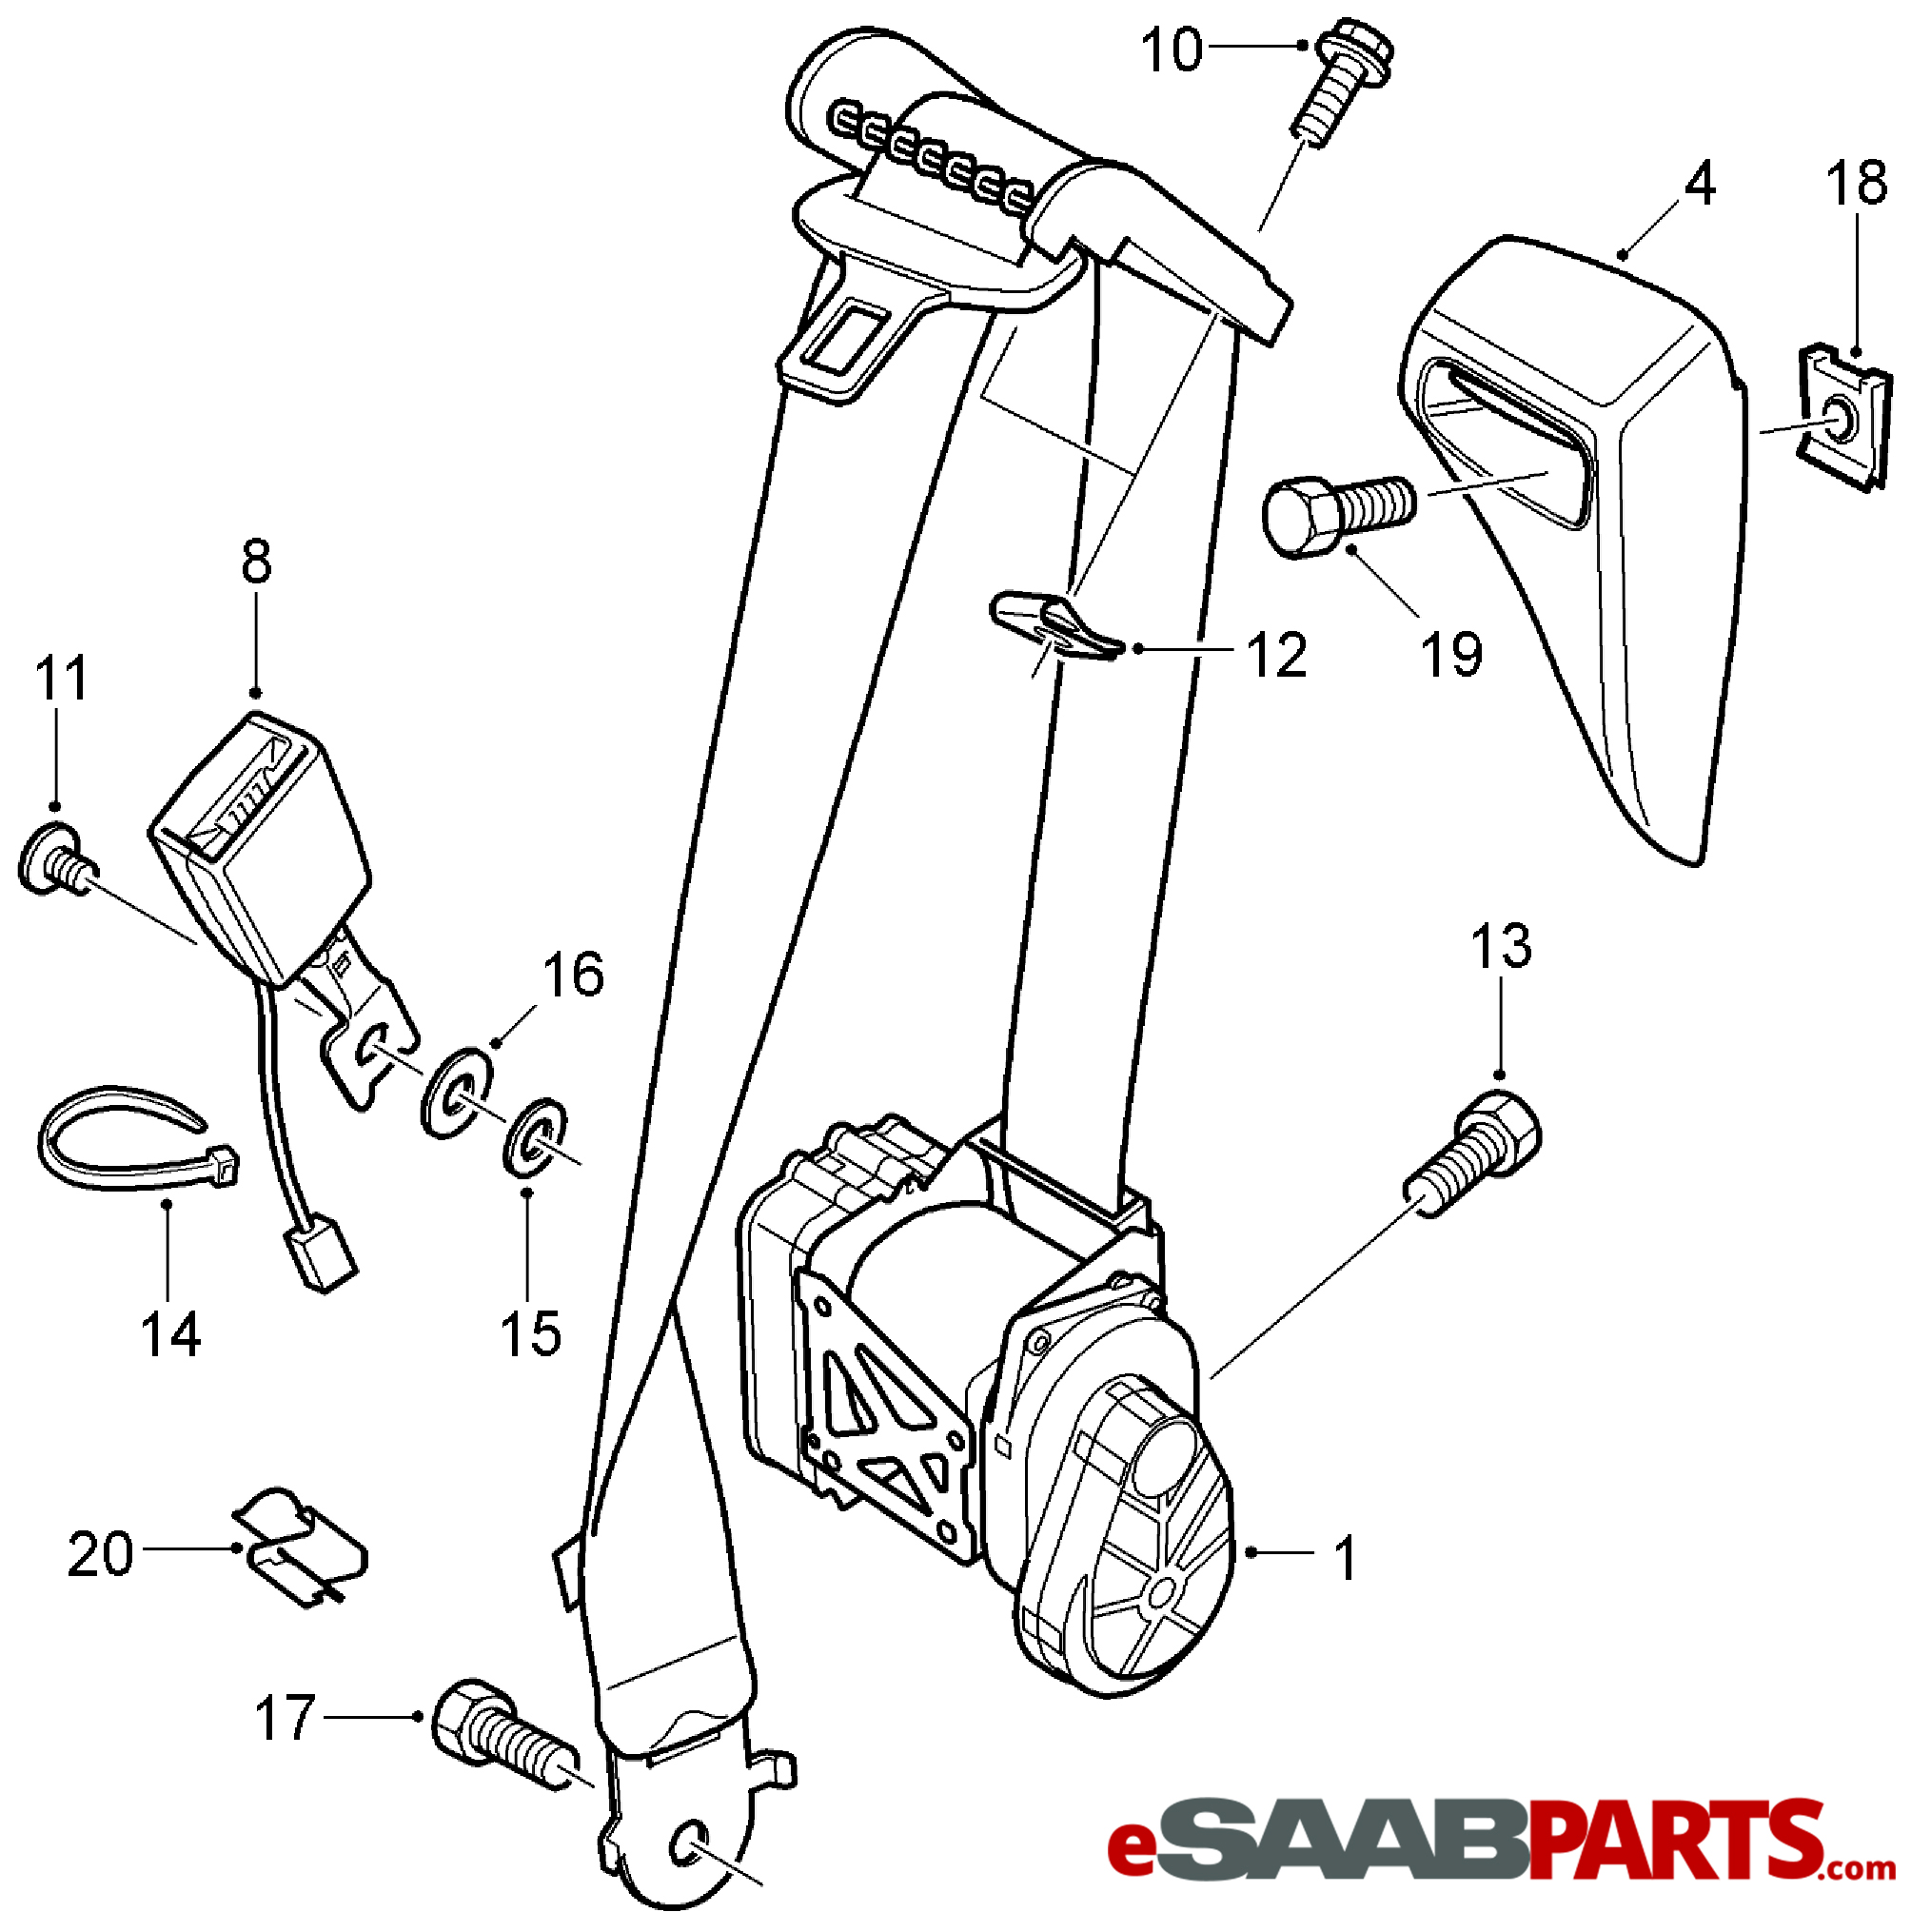 saab seat diagram  seat  auto parts catalog and diagram